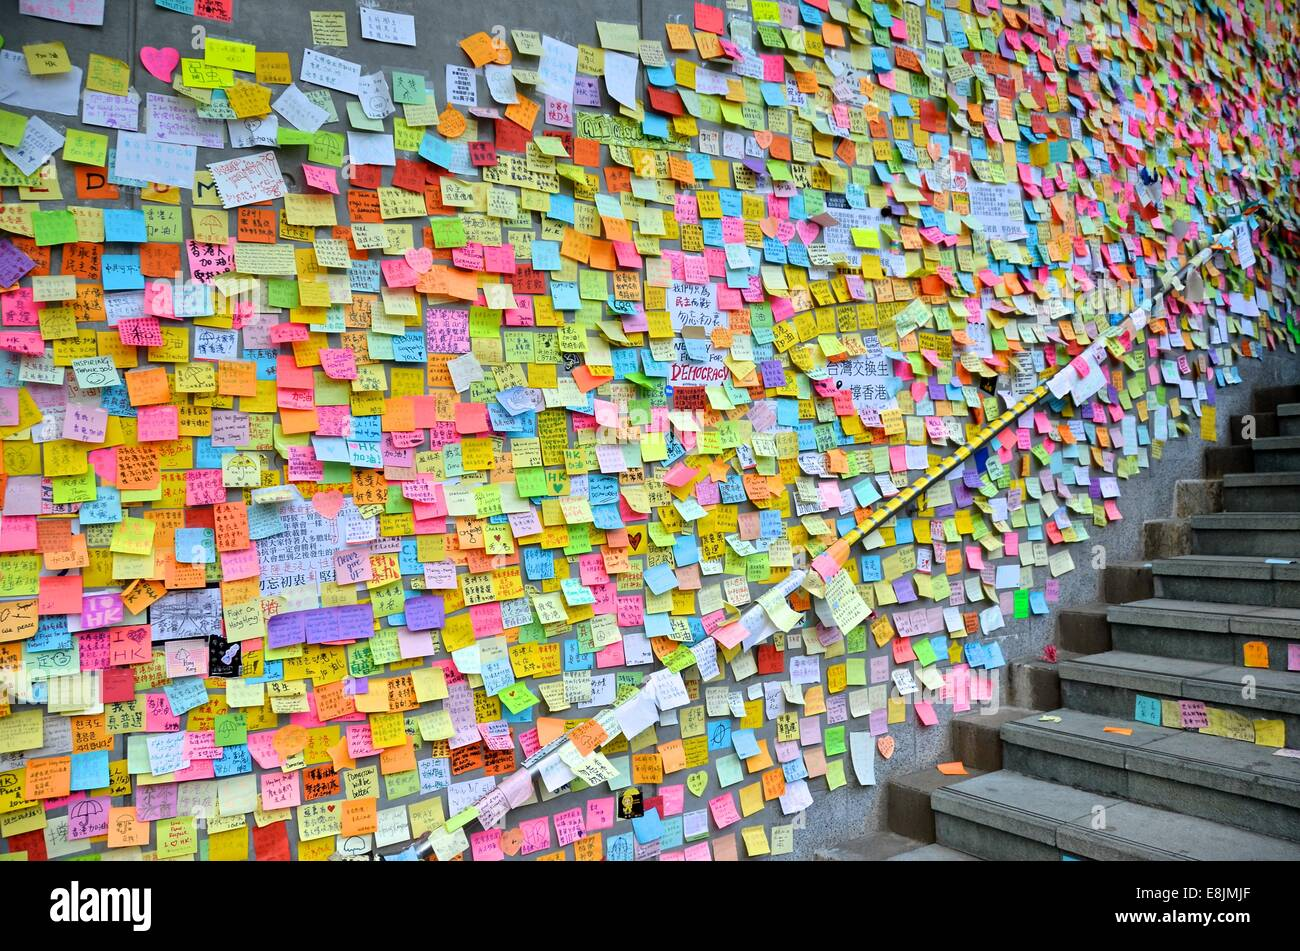 Hong Kong. 9th October, 2014. People's messages of support for the pro-democracy protests are posted on the walls Stock Photo